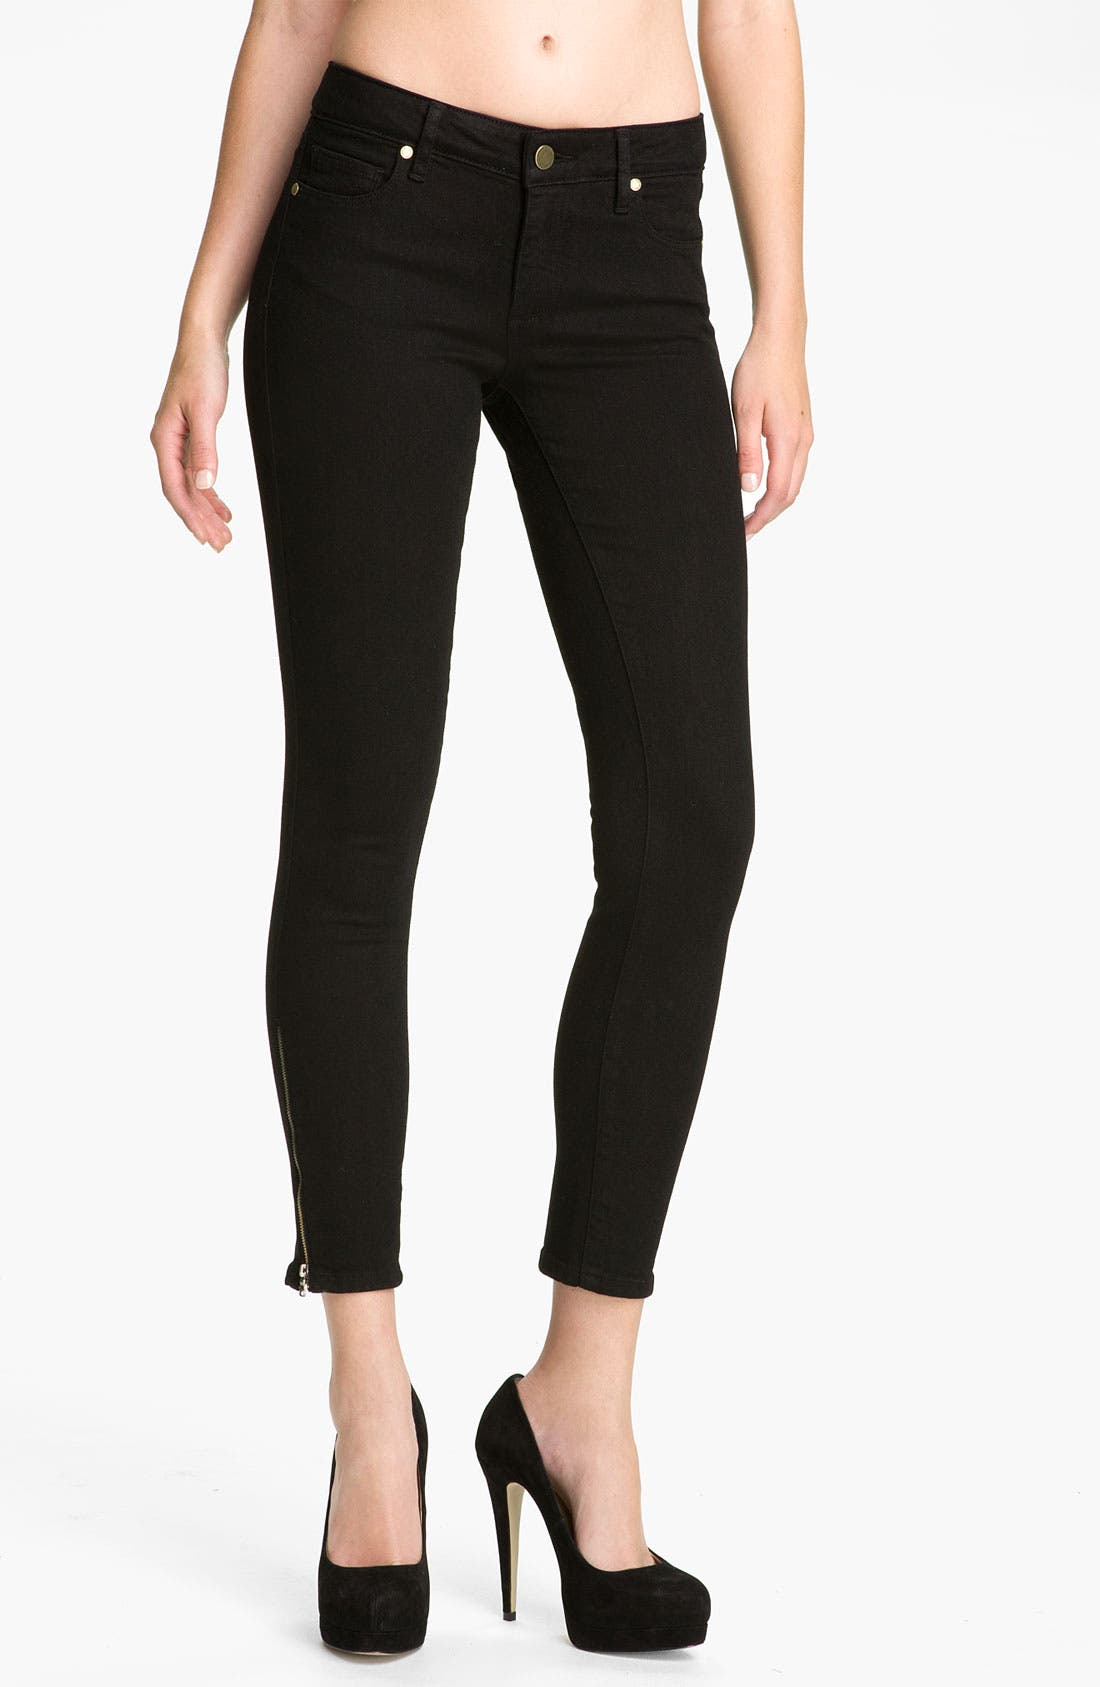 Alternate Image 1 Selected - Paige Denim 'Verdugo' Ankle Zip Skinny Stretch Jeans (Black Ink)